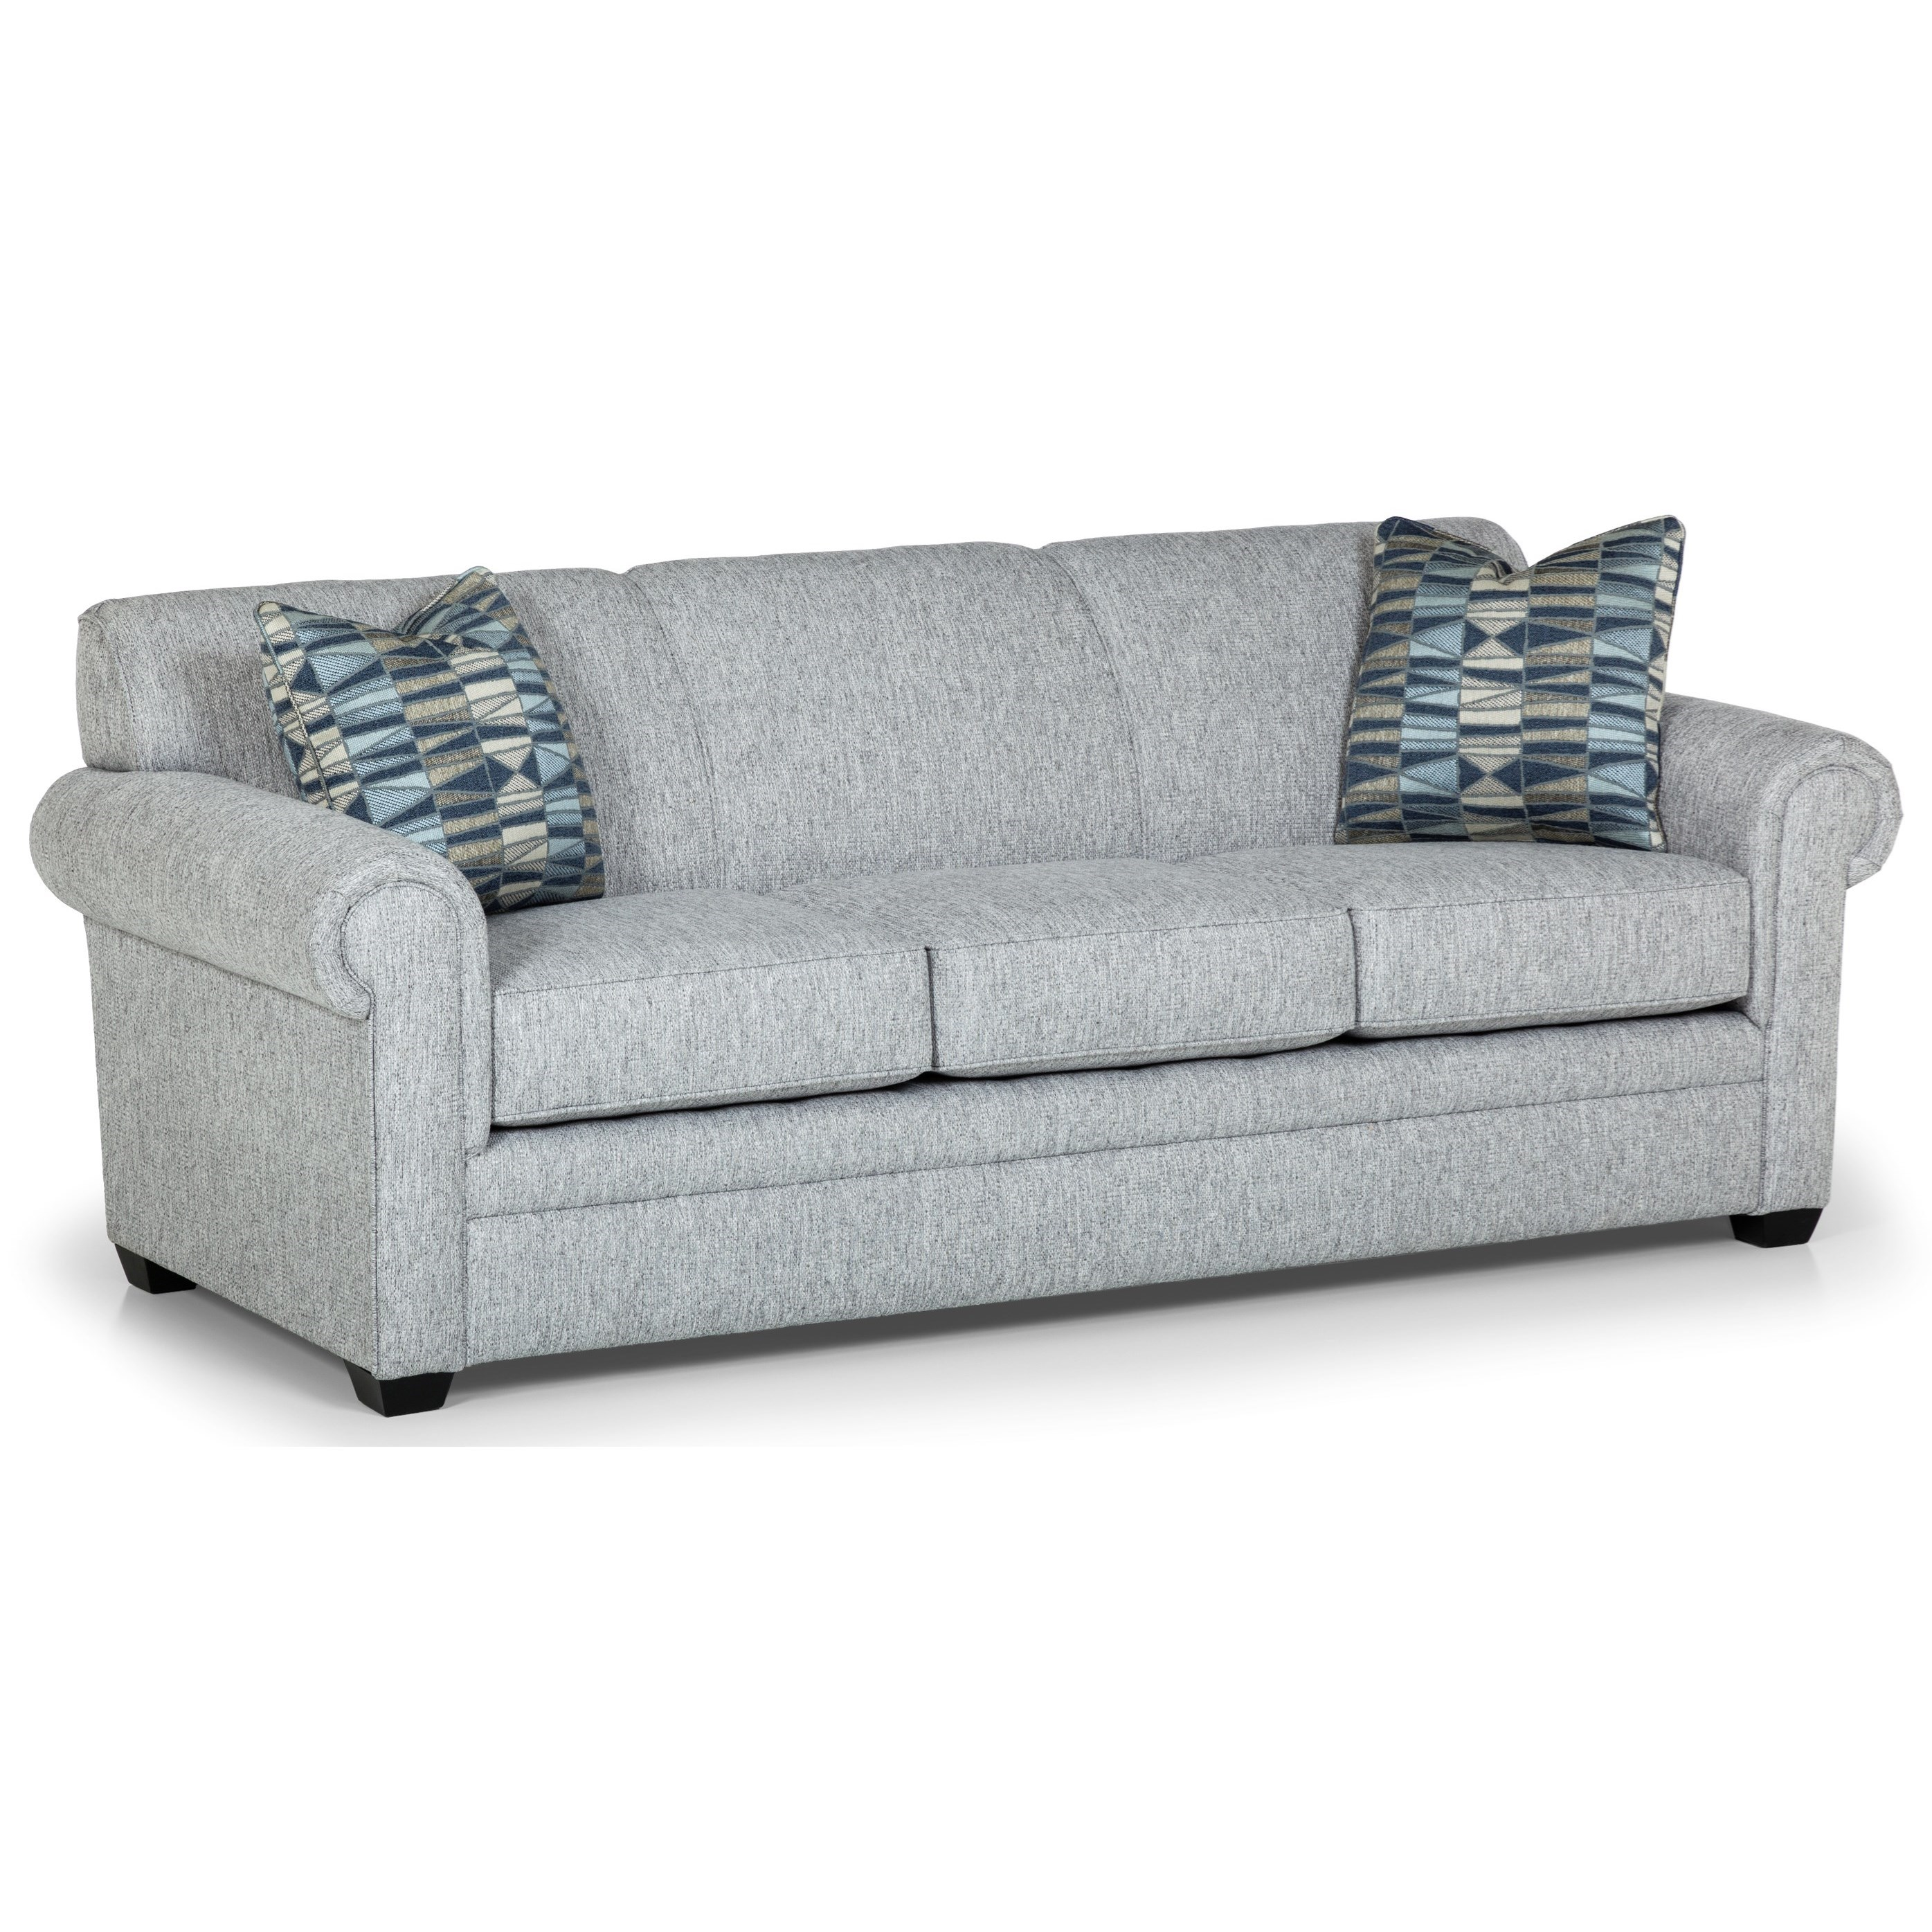 461 Sofa by Sunset Home at Sadler's Home Furnishings